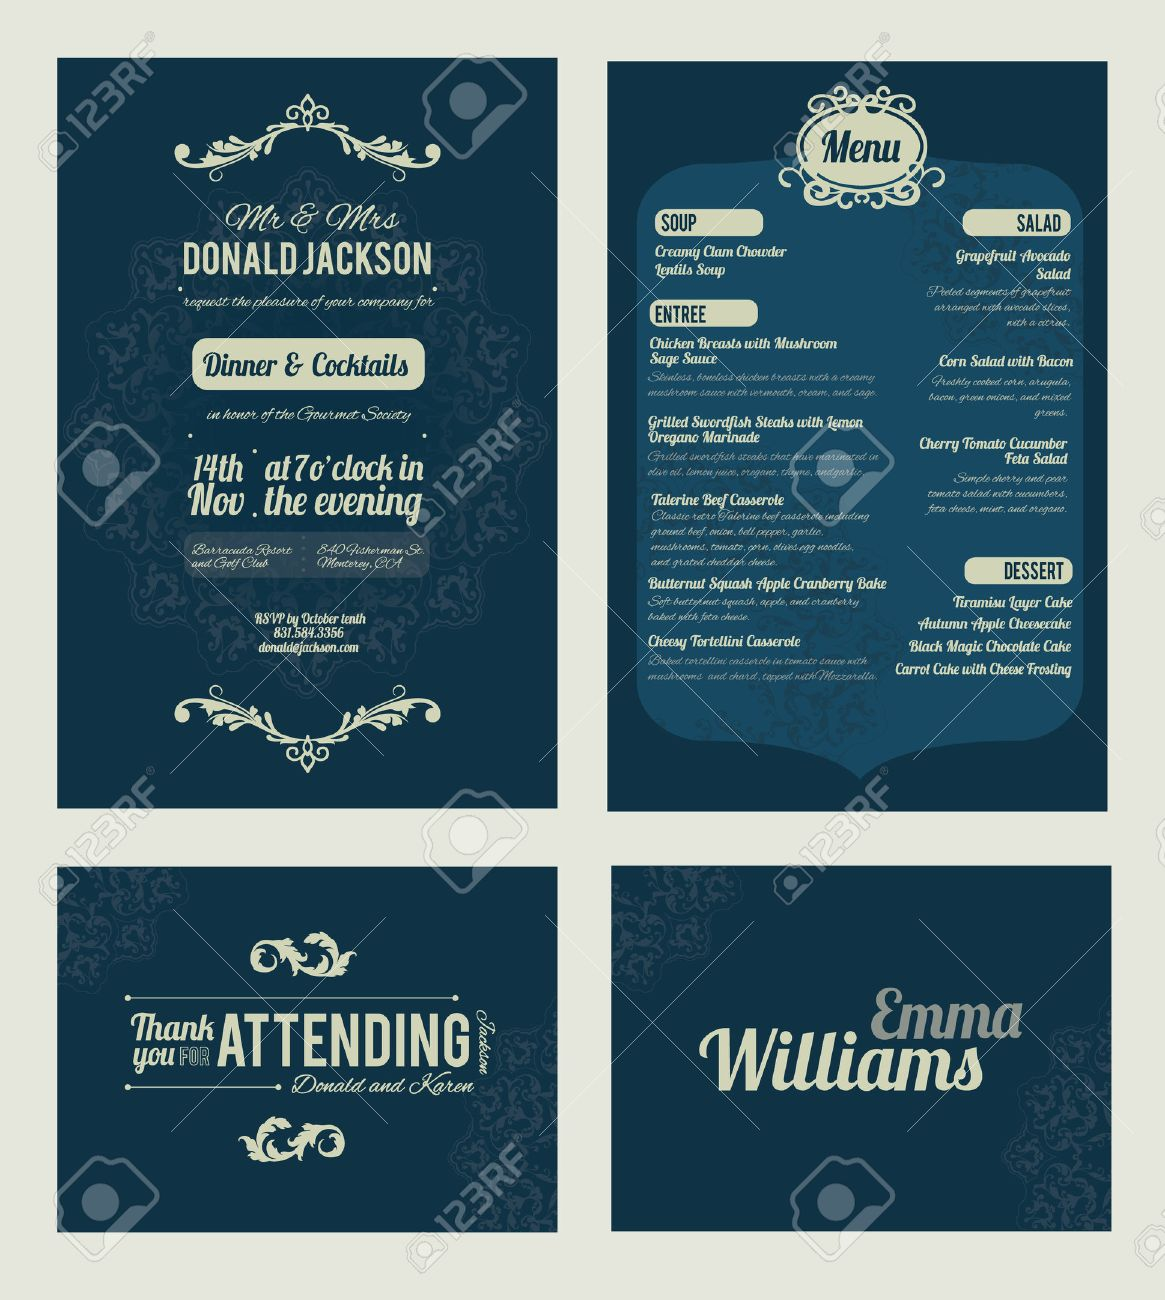 Vector Elegant Blue Dinner Coctails Party Invitation Set. Invite, menu, thank you, place card, event collection, graphic design Stock Vector - 48482474